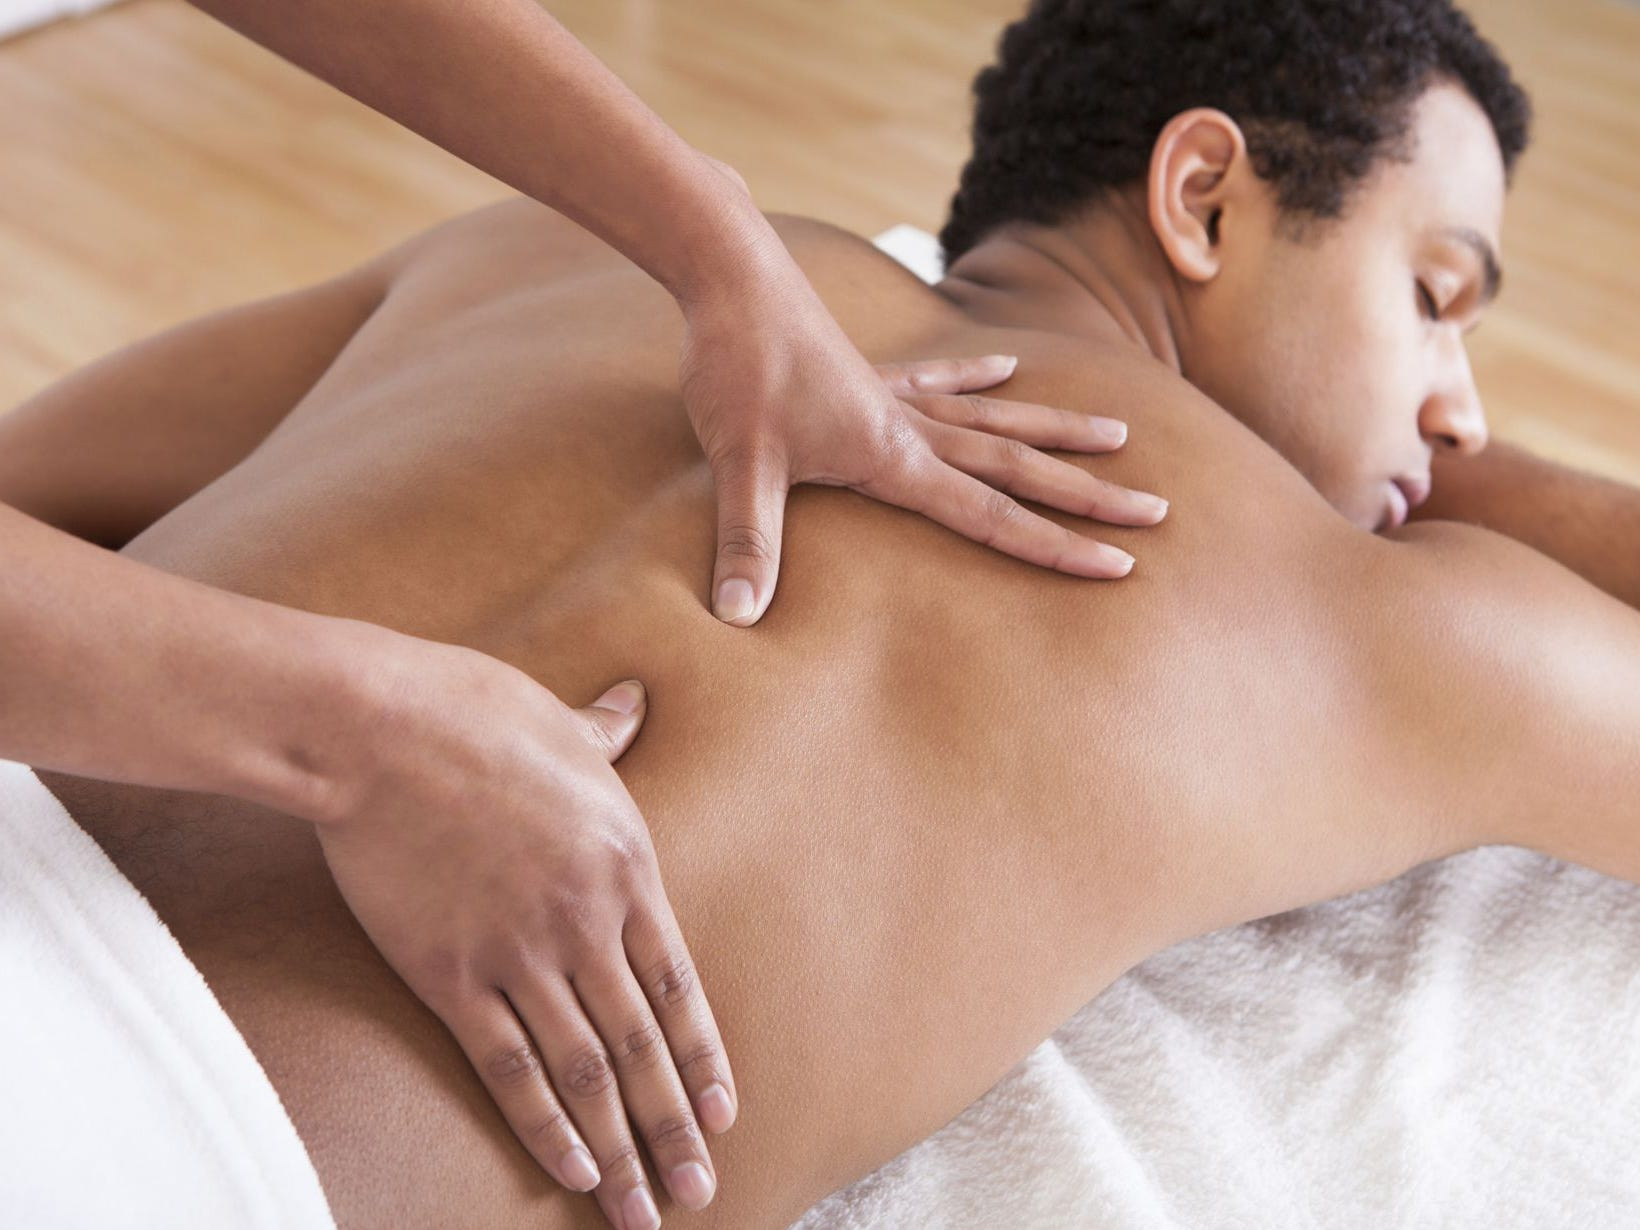 Massage Envy, hiring 170. The company has openings ranging from massage therapistto sales associate. More info:massageenvy.com/careers.